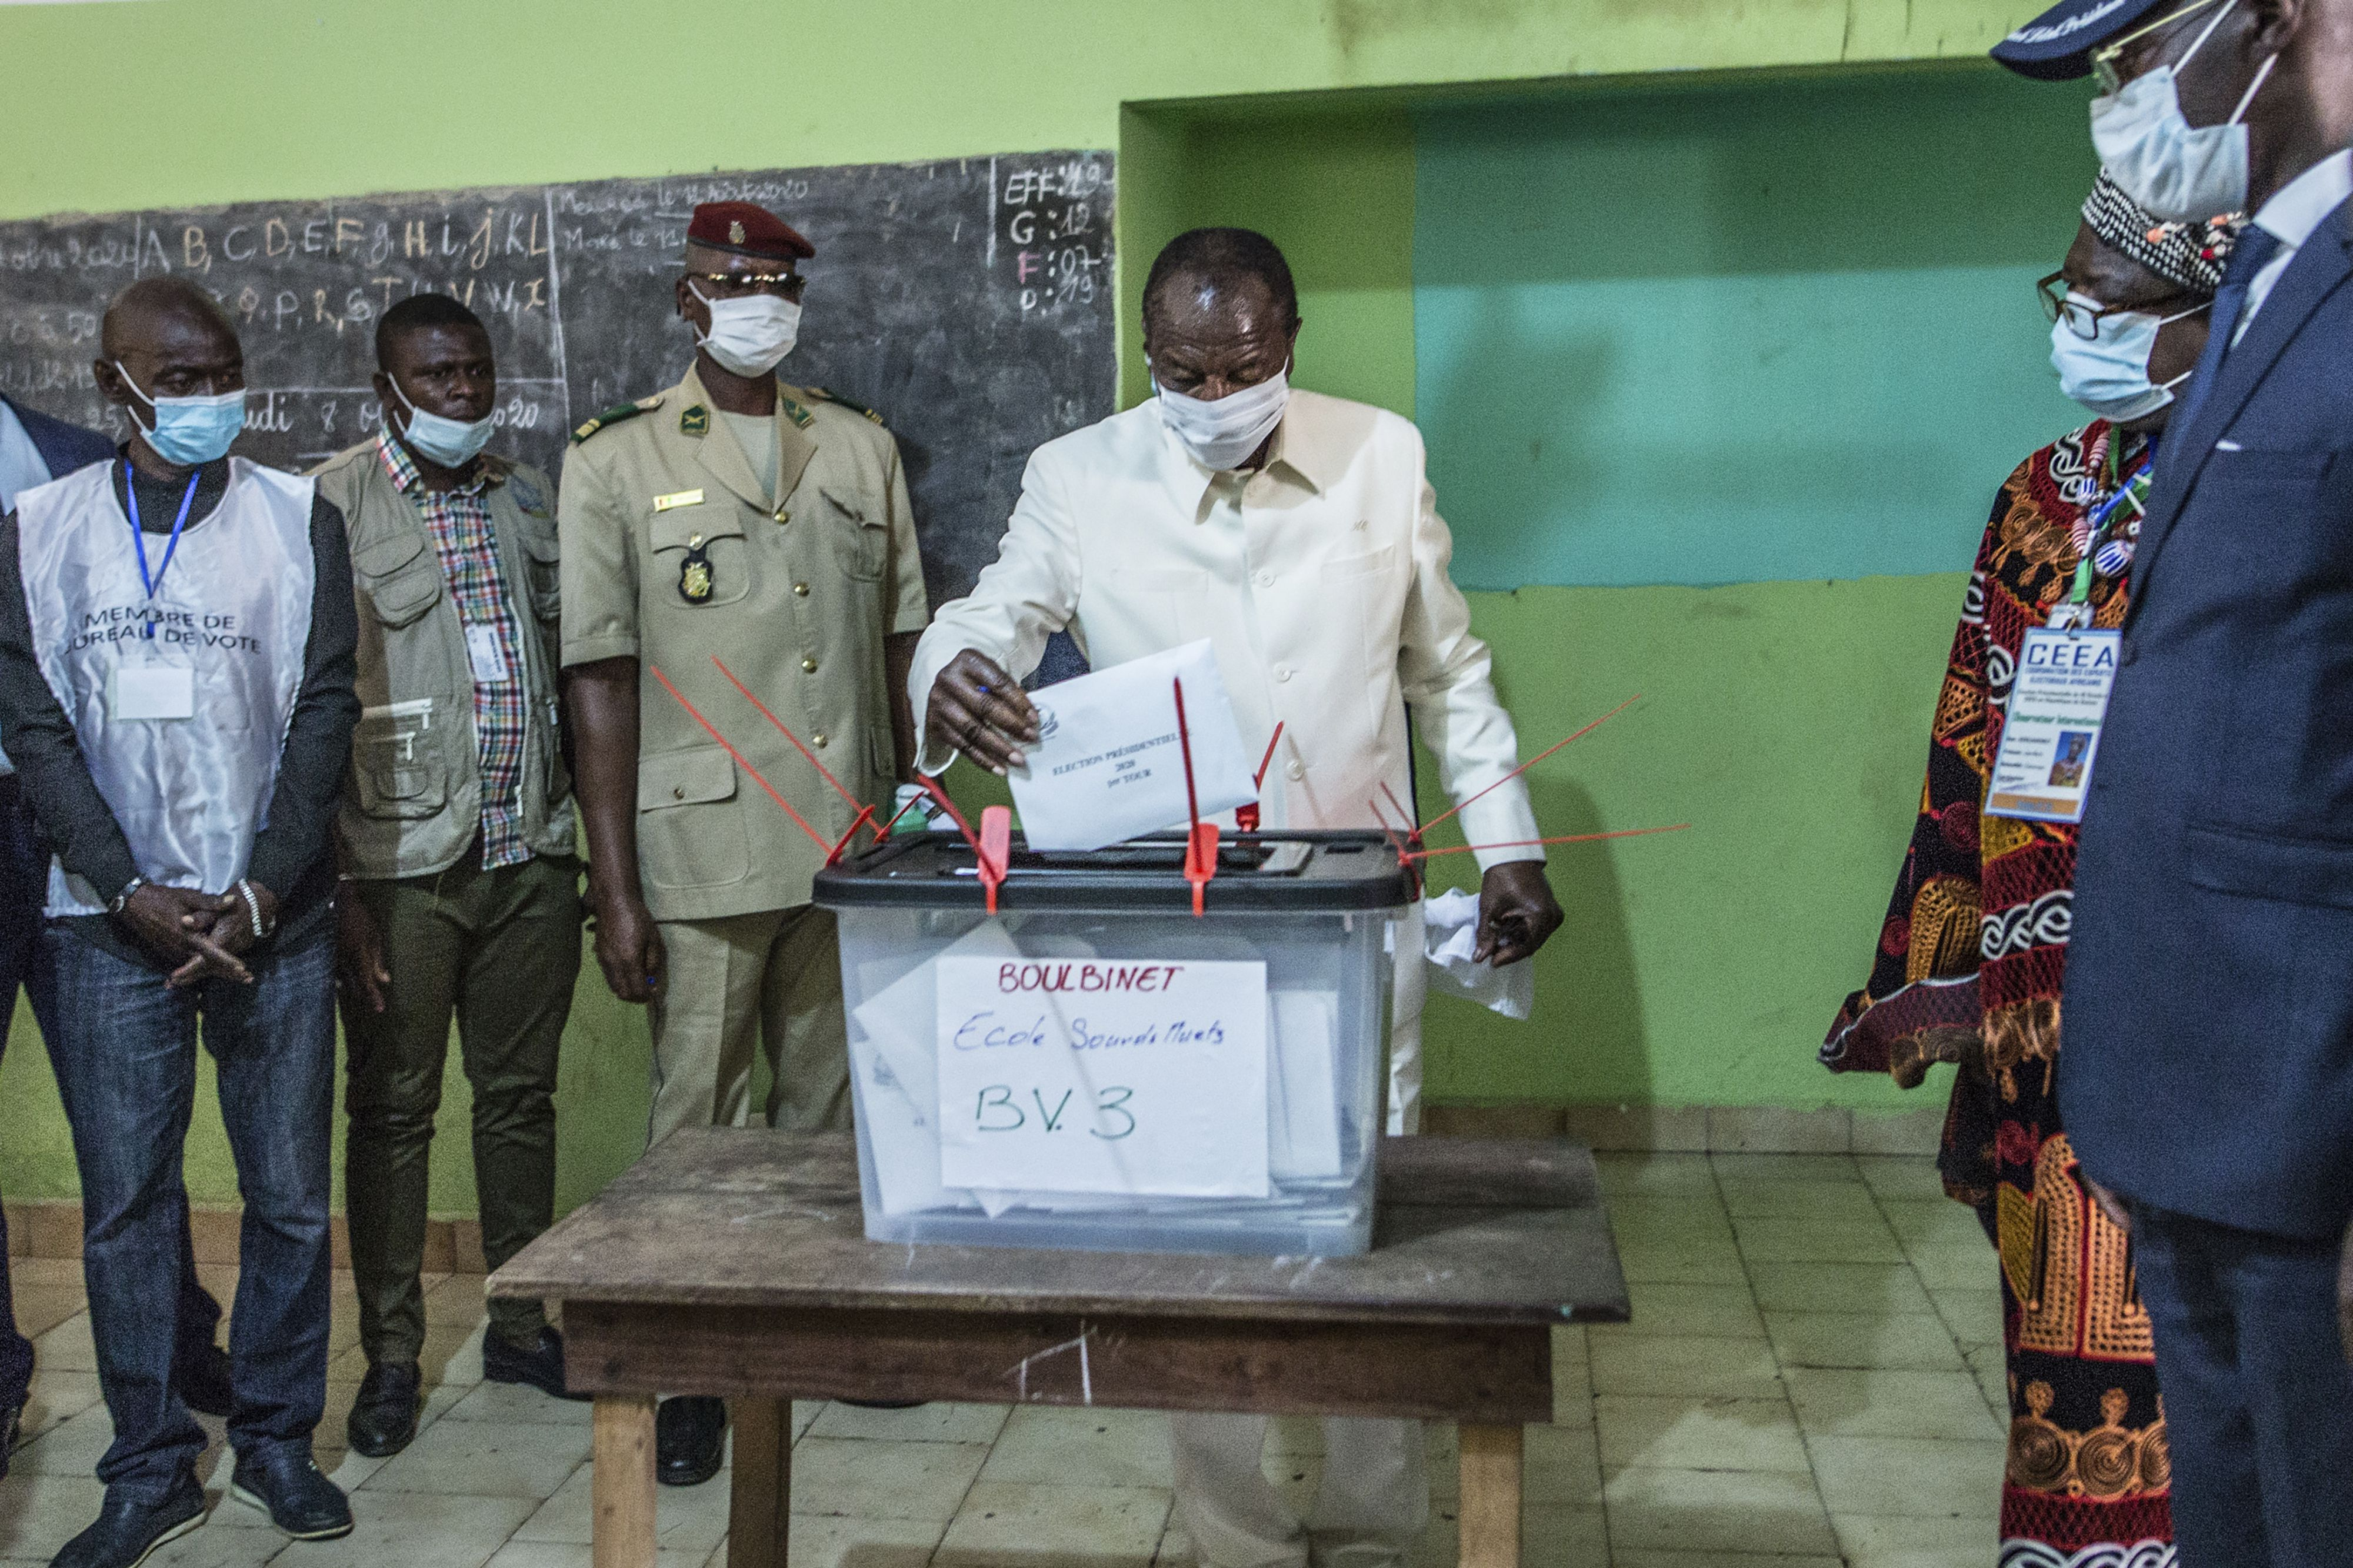 String of tense elections tests Africa's democracies